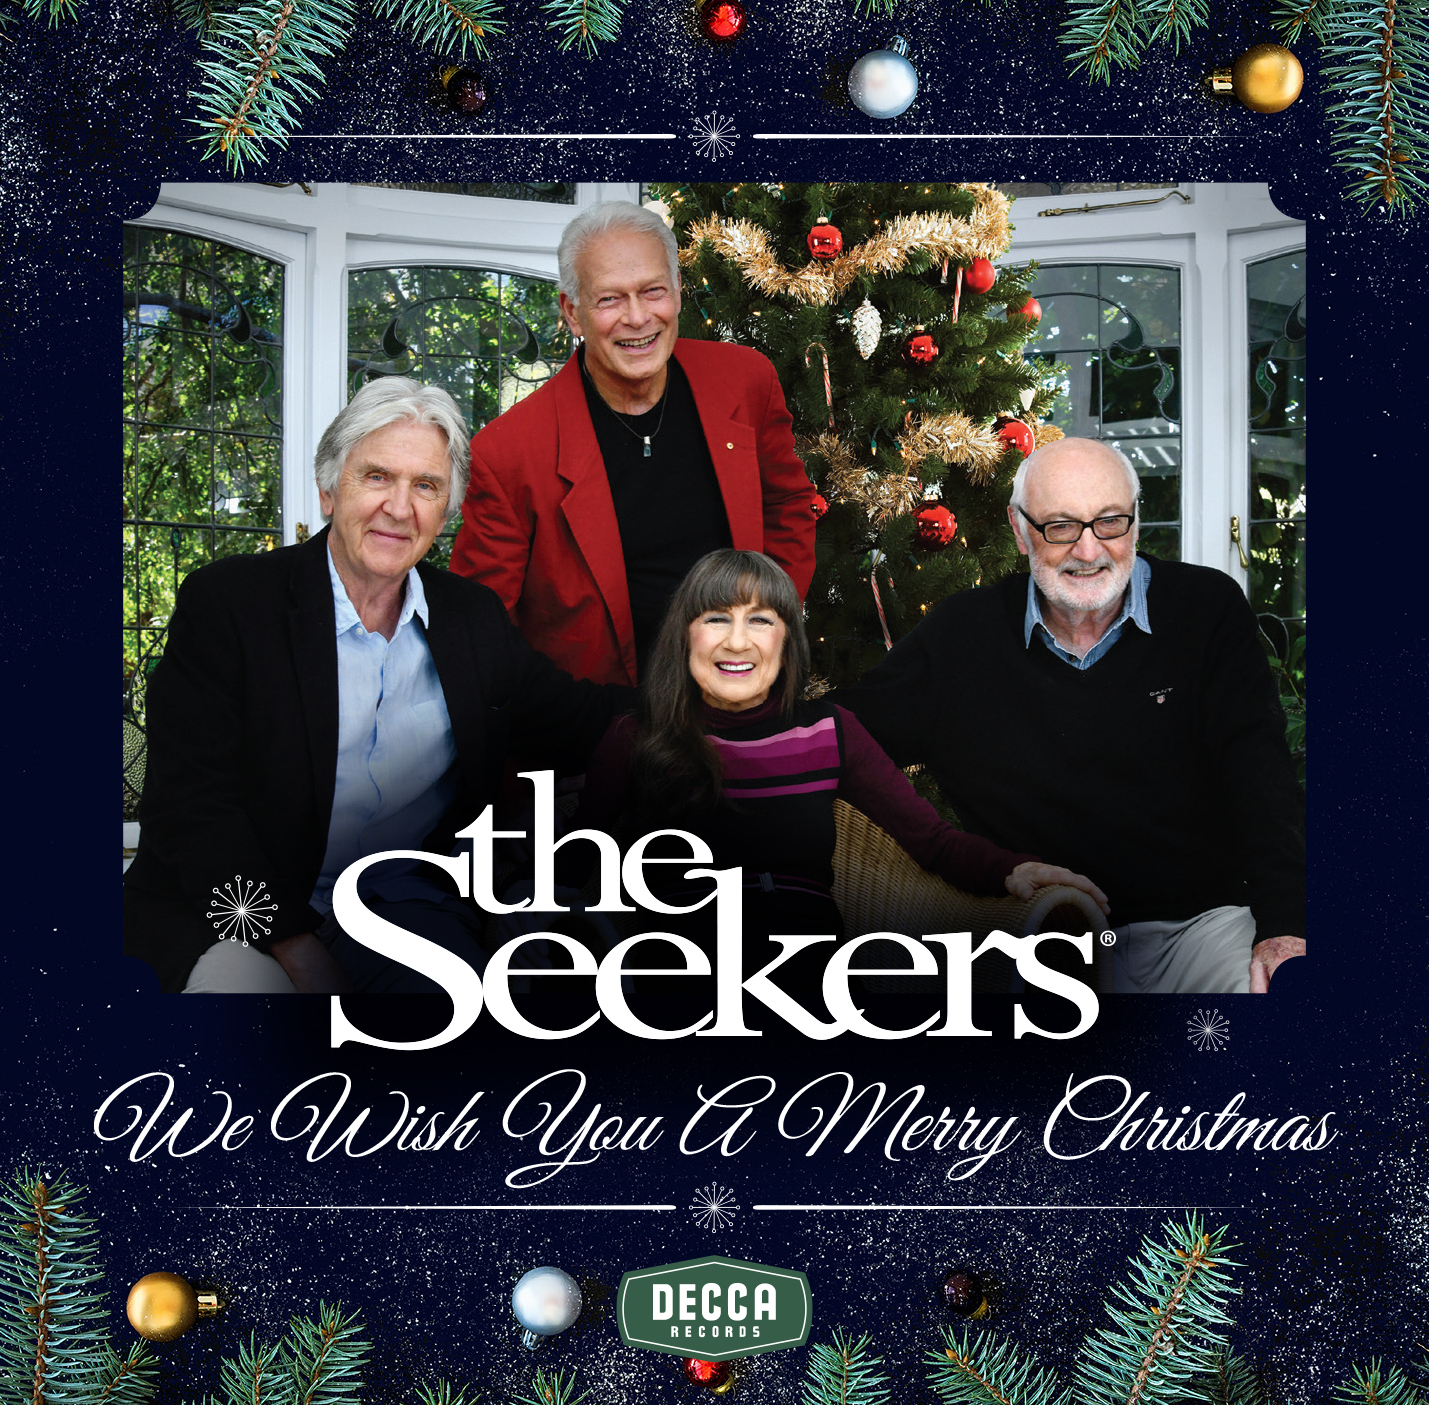 Christmas with The Seekers